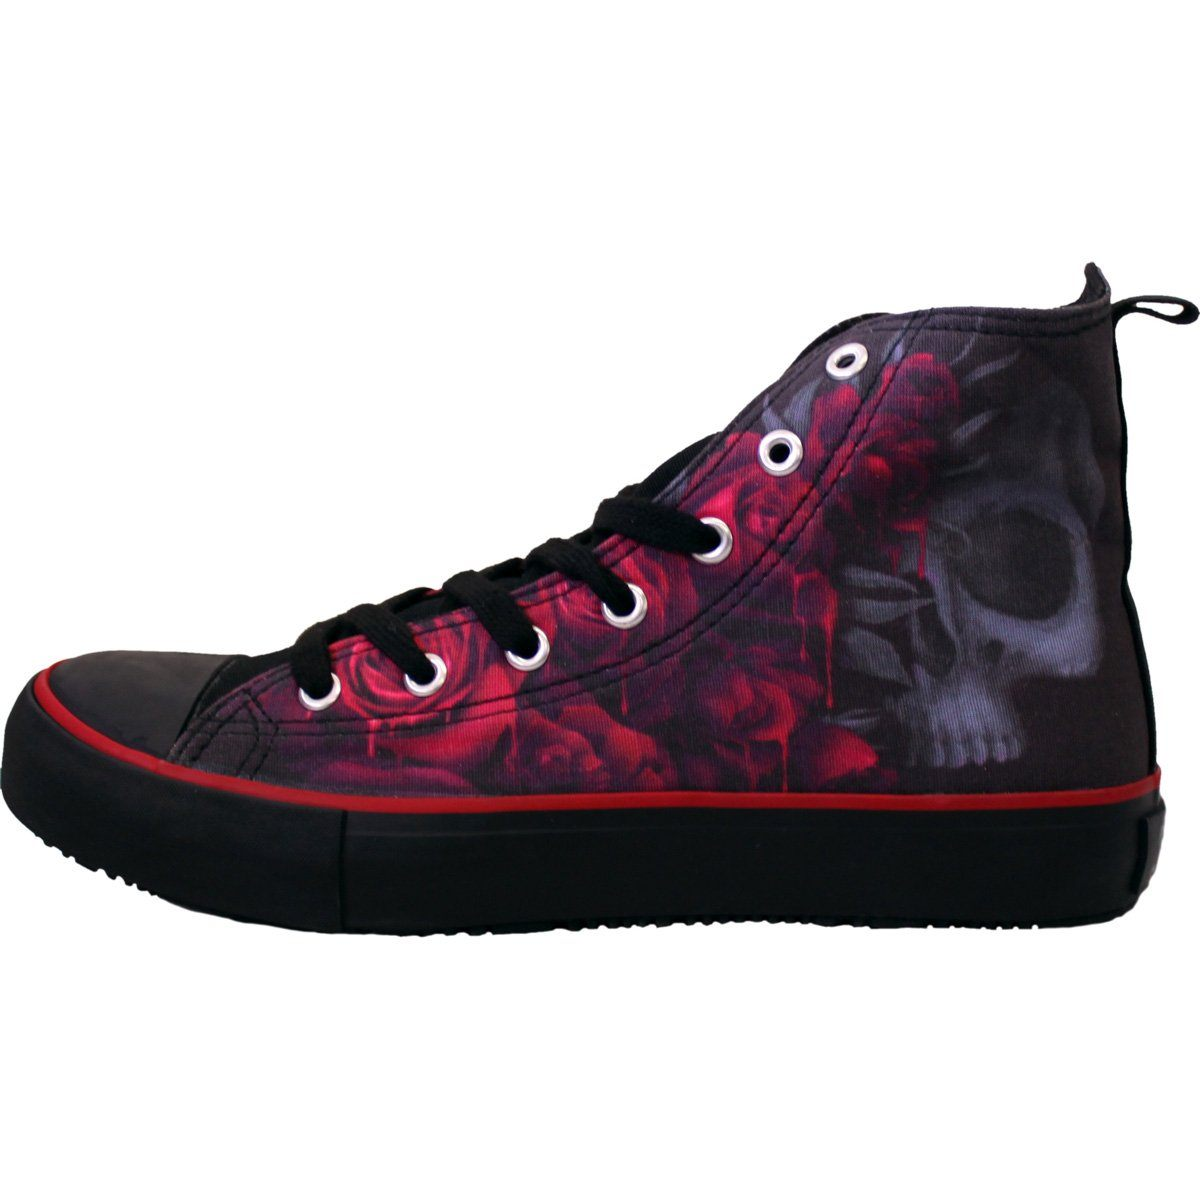 Blood Rose Women's High-Top Sneakers - Rebels Depot